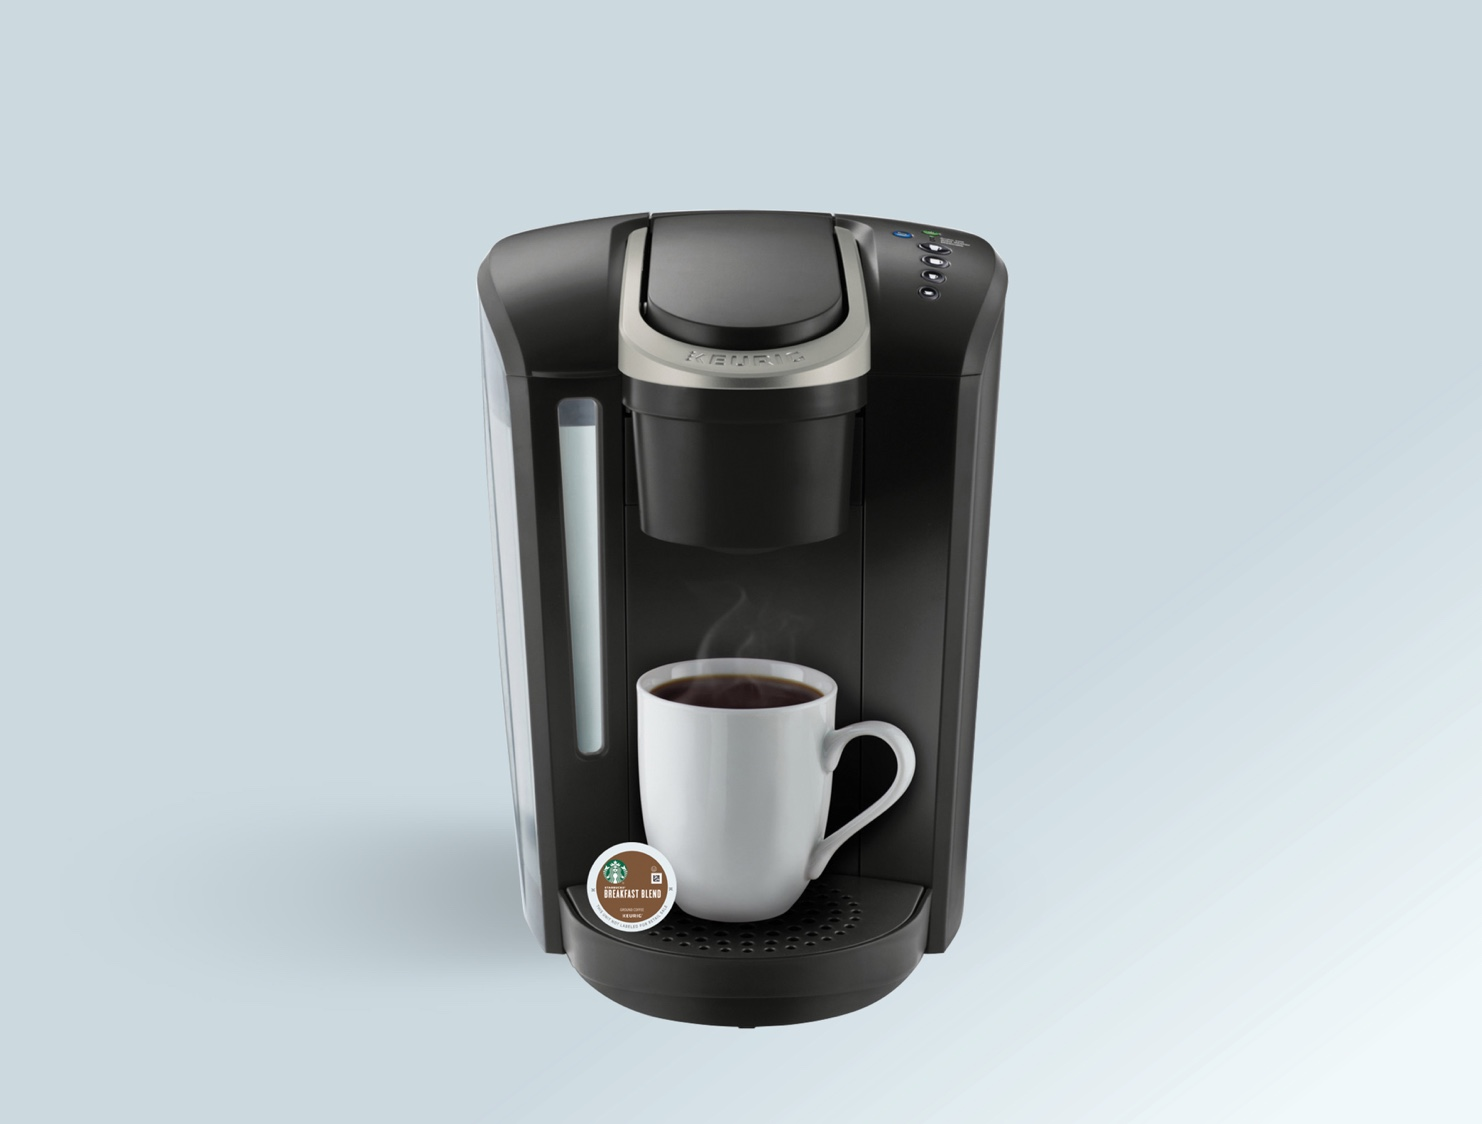 Keurig® K-Select™ K80 Coffee Maker & Starbucks® Coffee